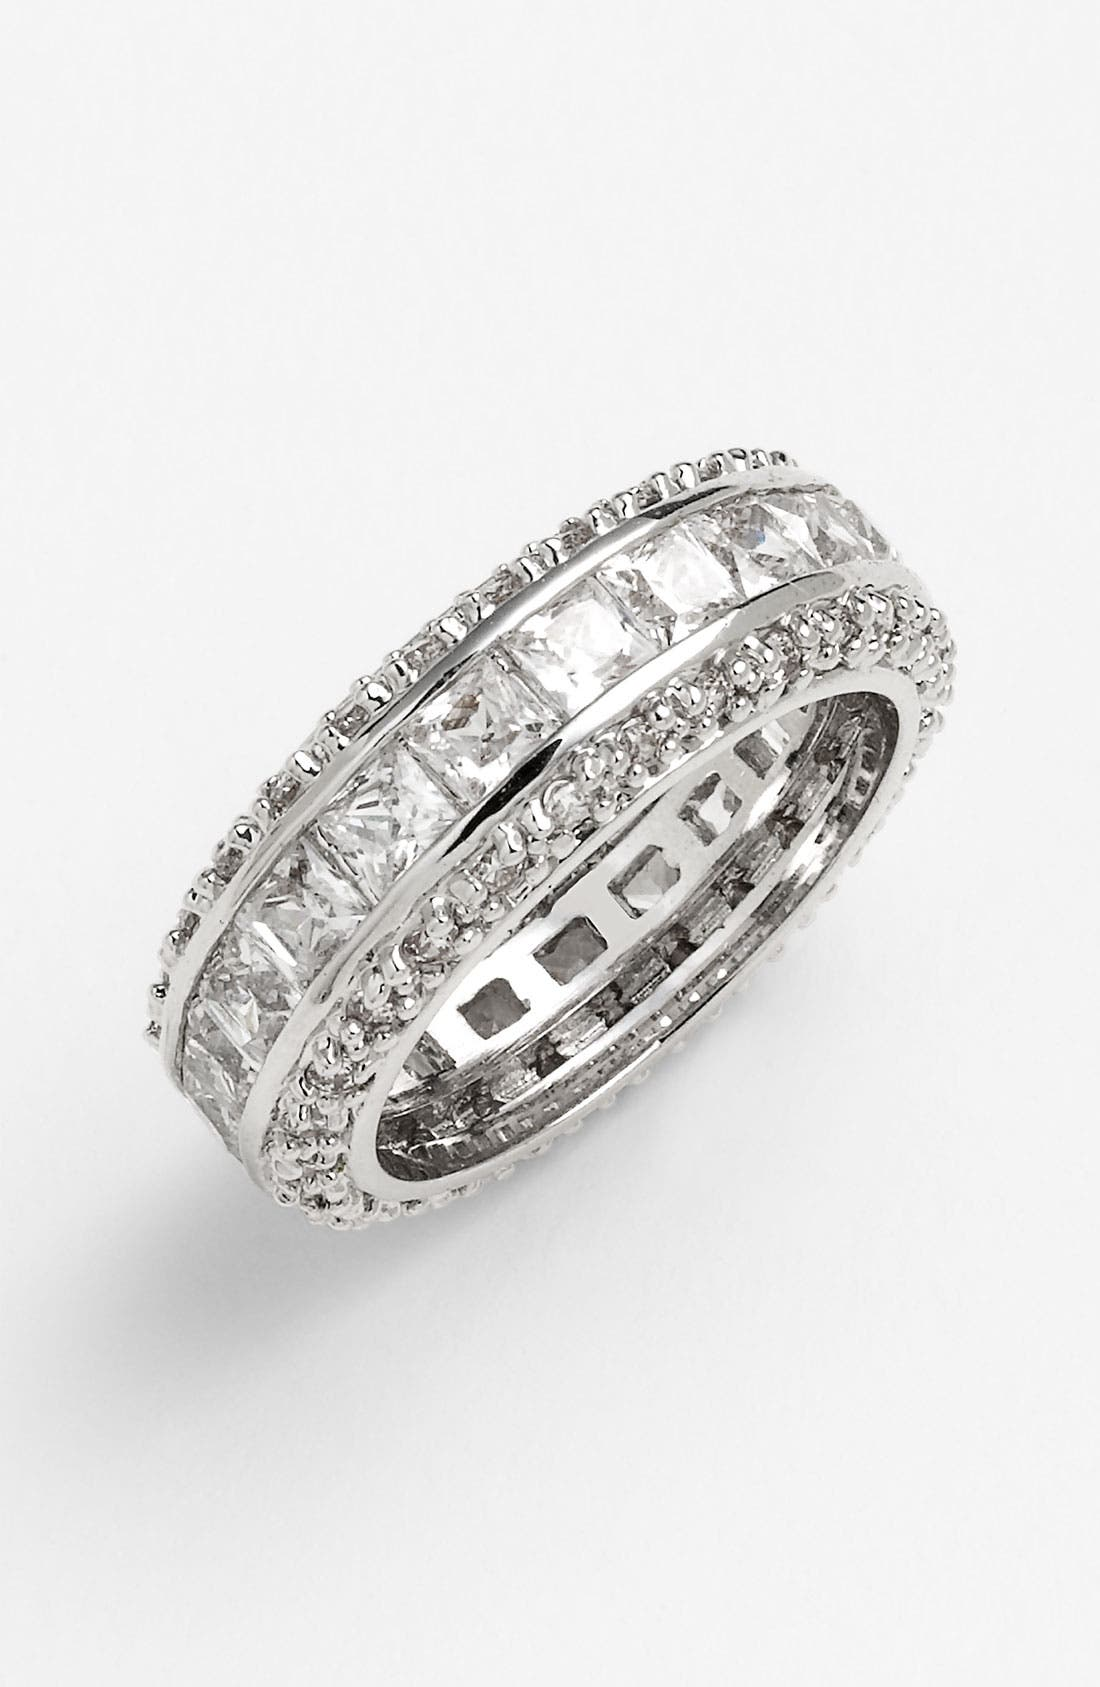 Main Image - Ariella Collection Channel Set Eternity Band Ring